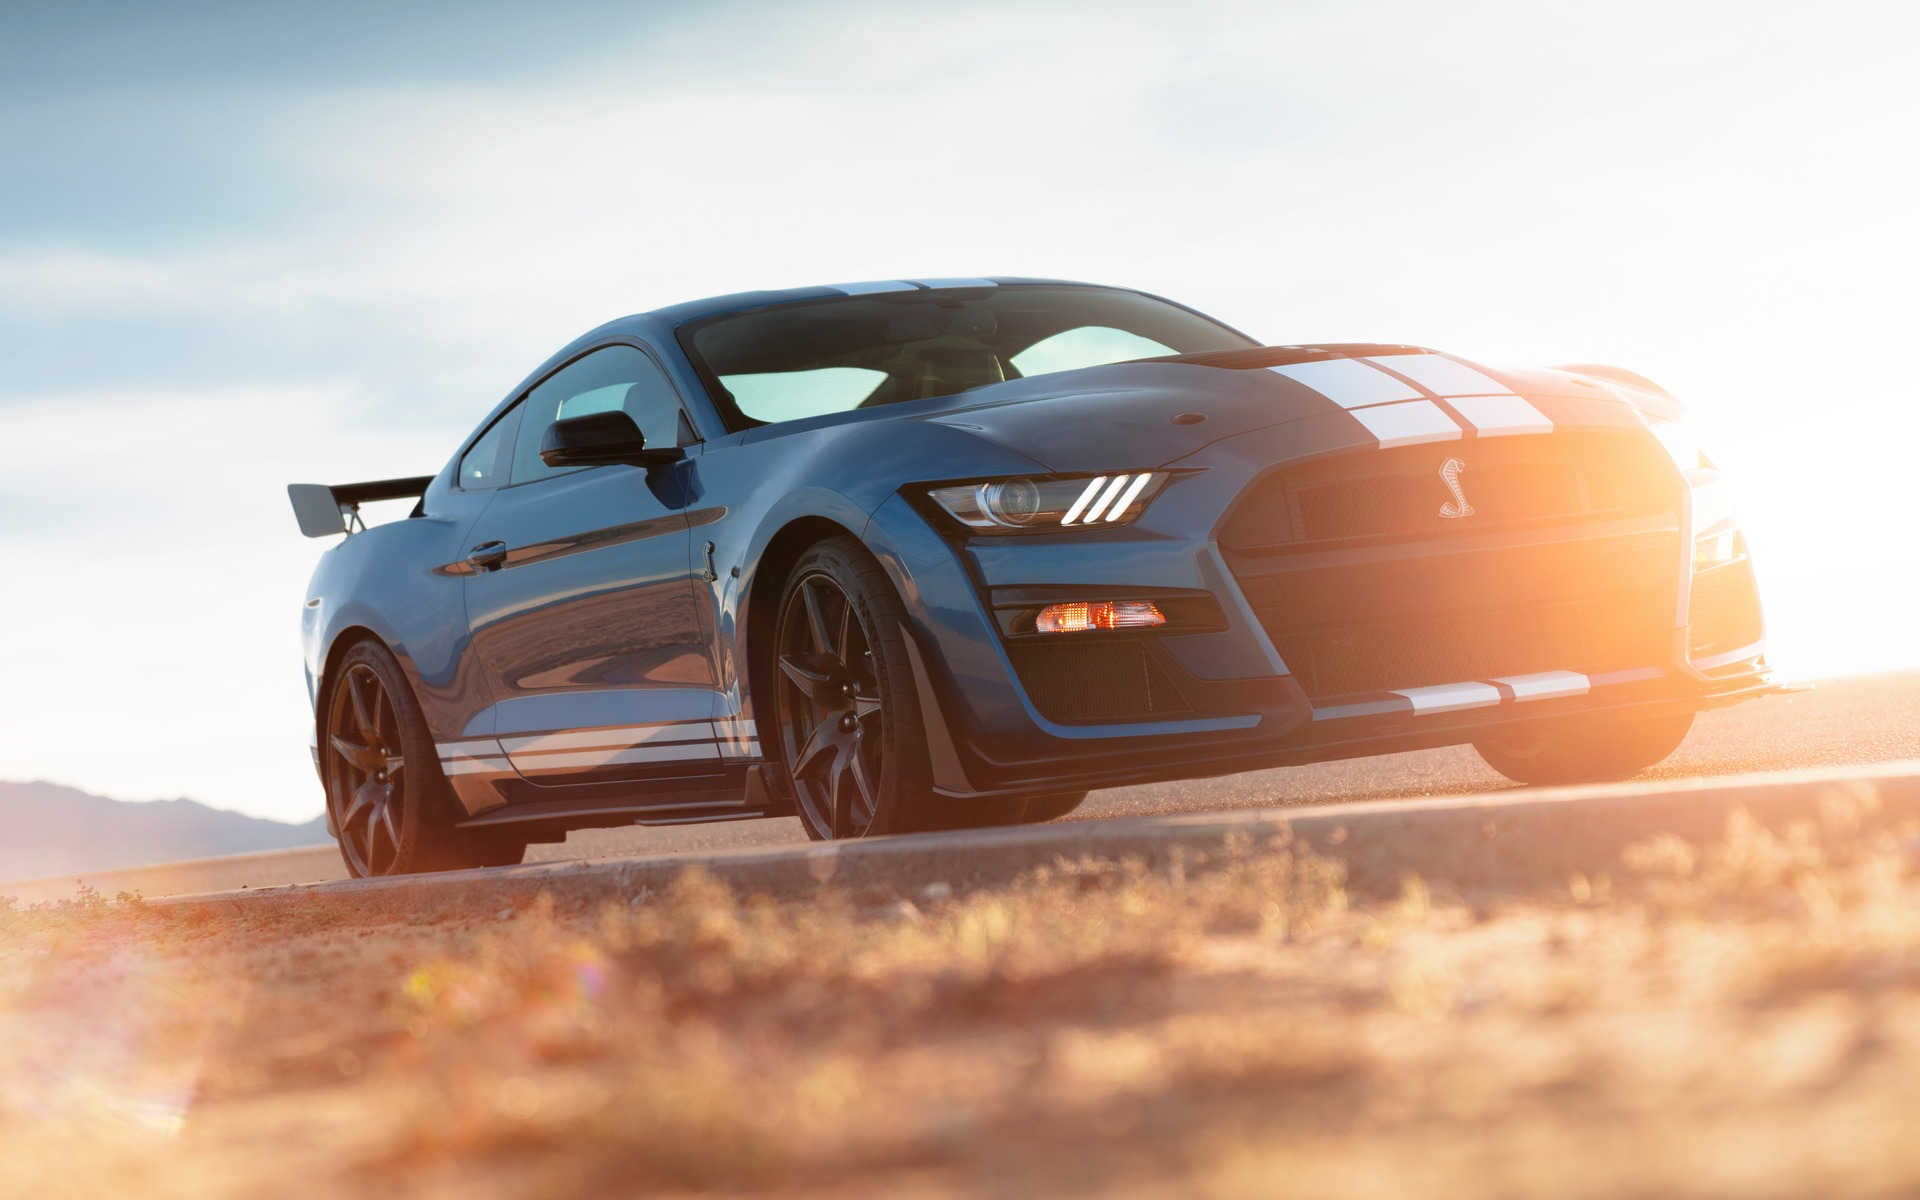 2020 Ford Mustang Shelby Gt500 Pricing Is Finally Unveiled The Car Guide